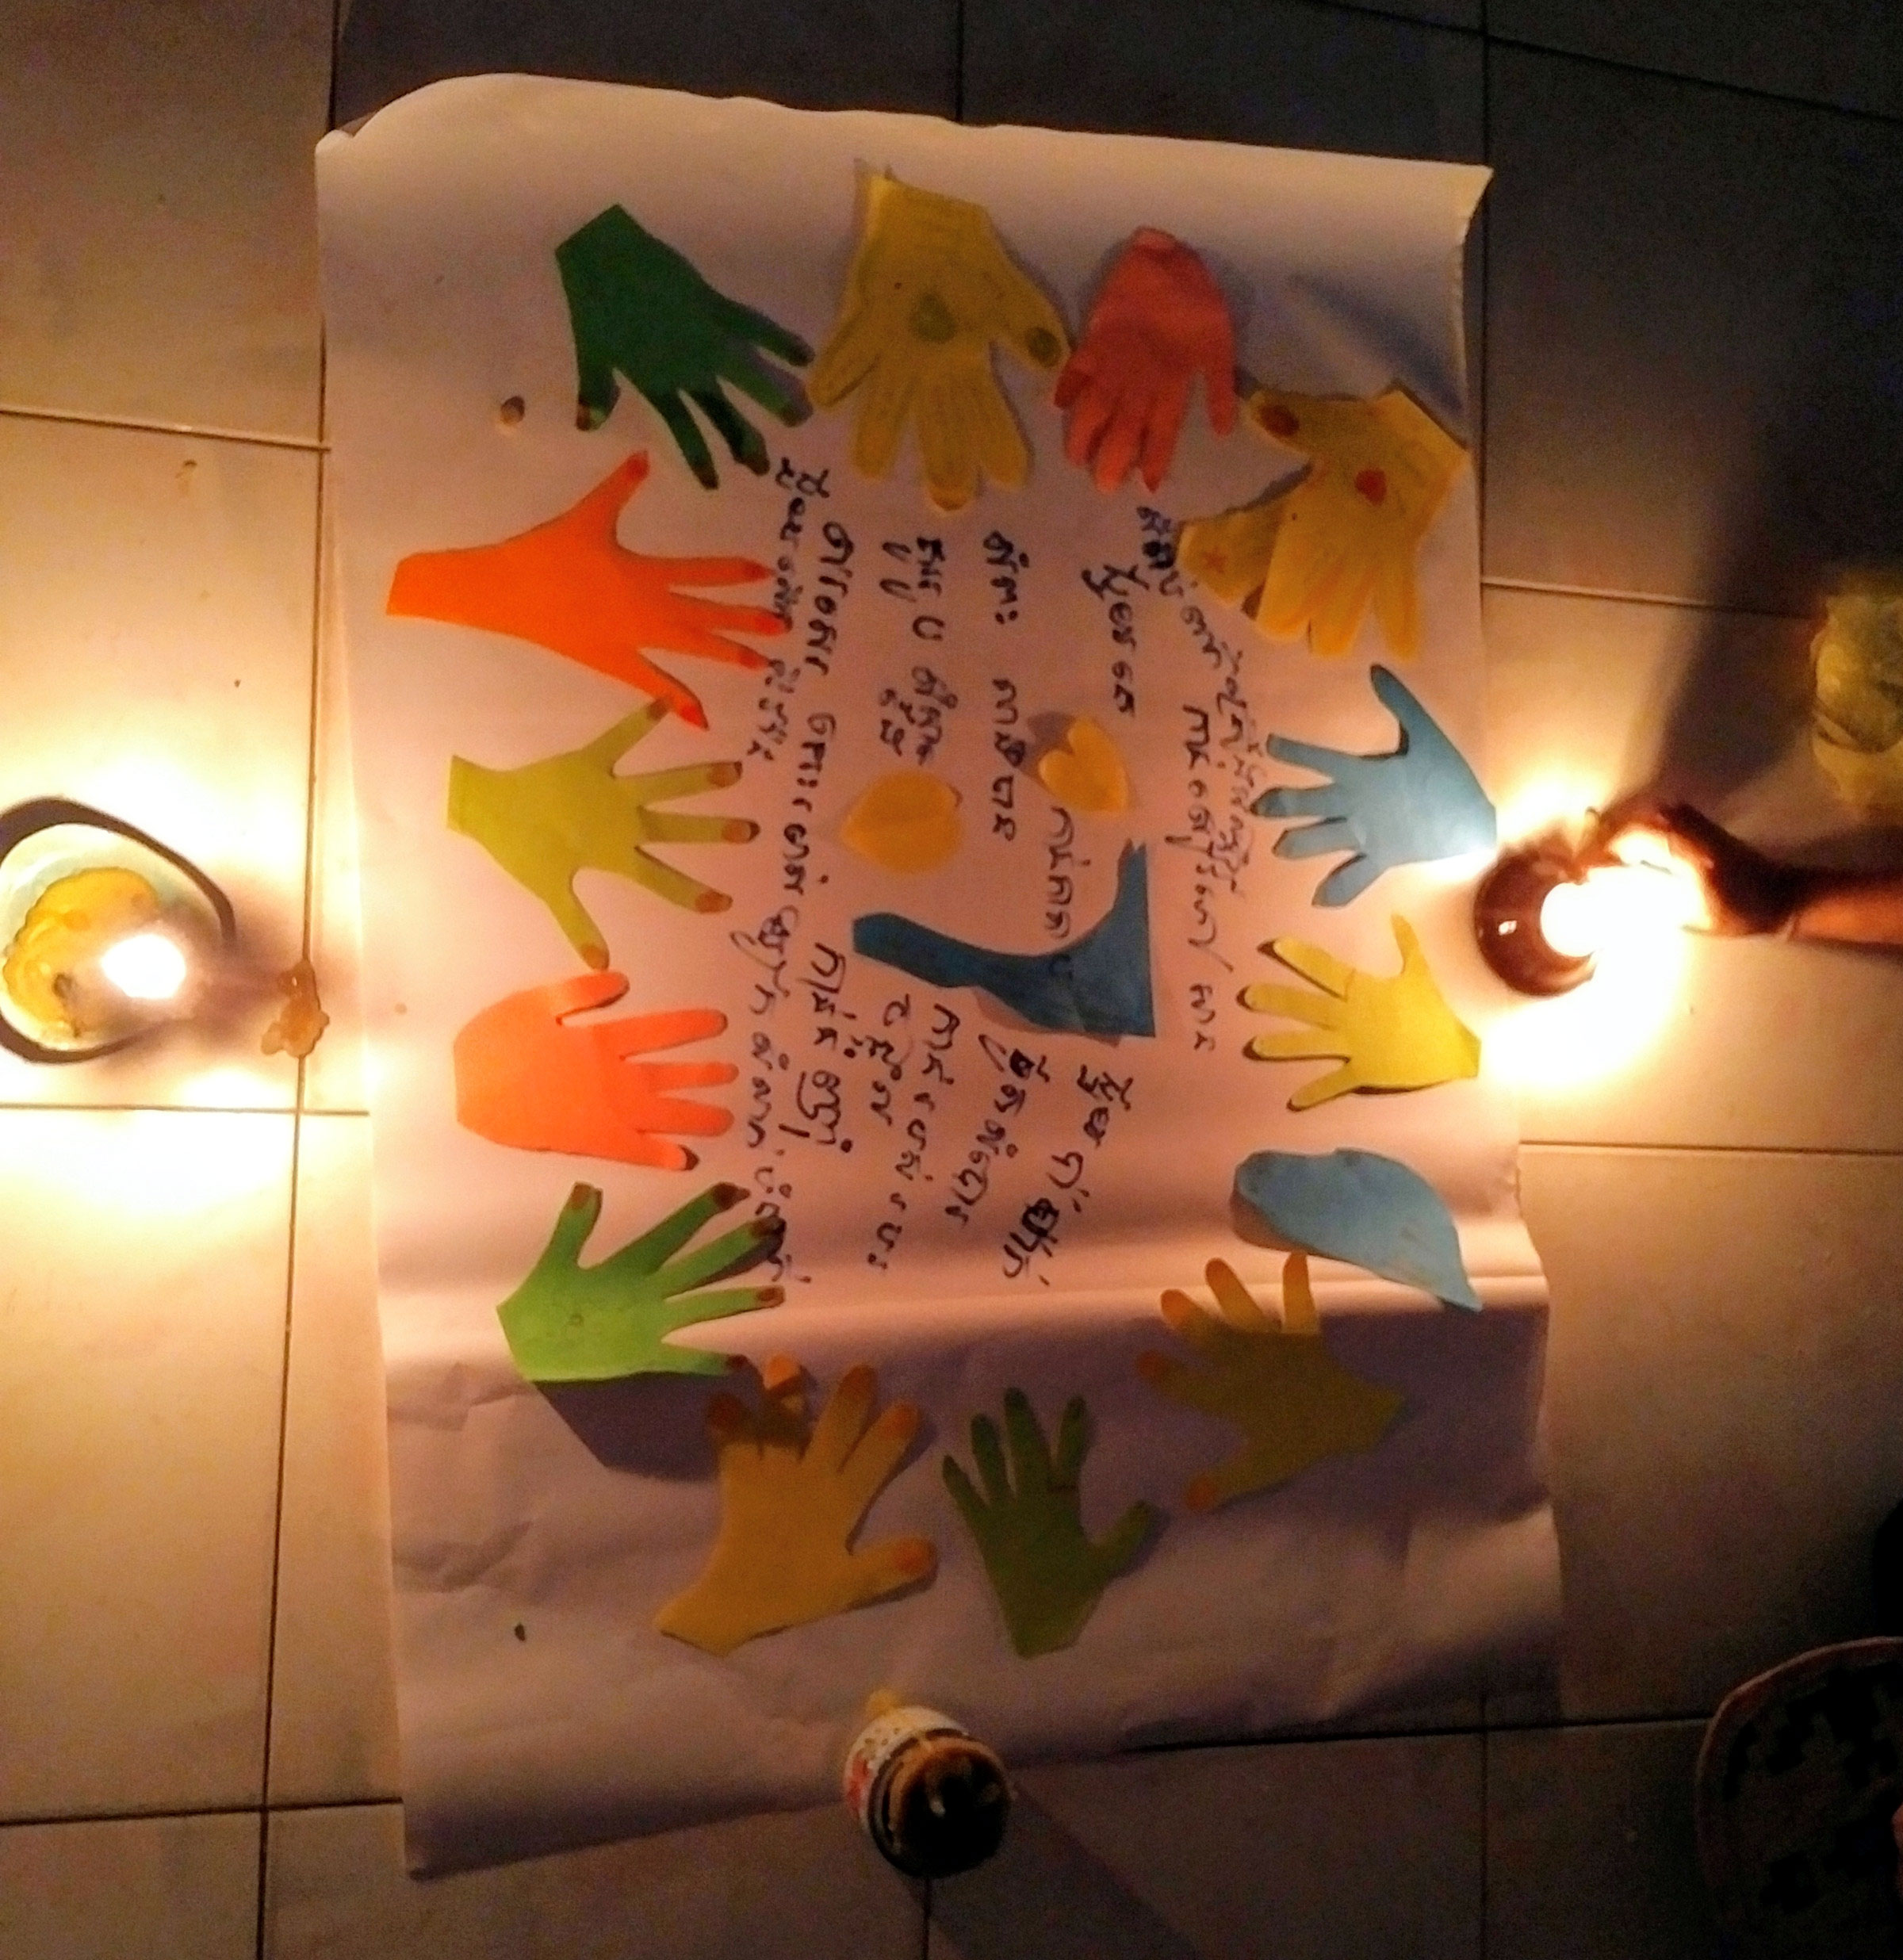 Respect activity - hands are for. Participants were working under candle light when electricity was cut off.